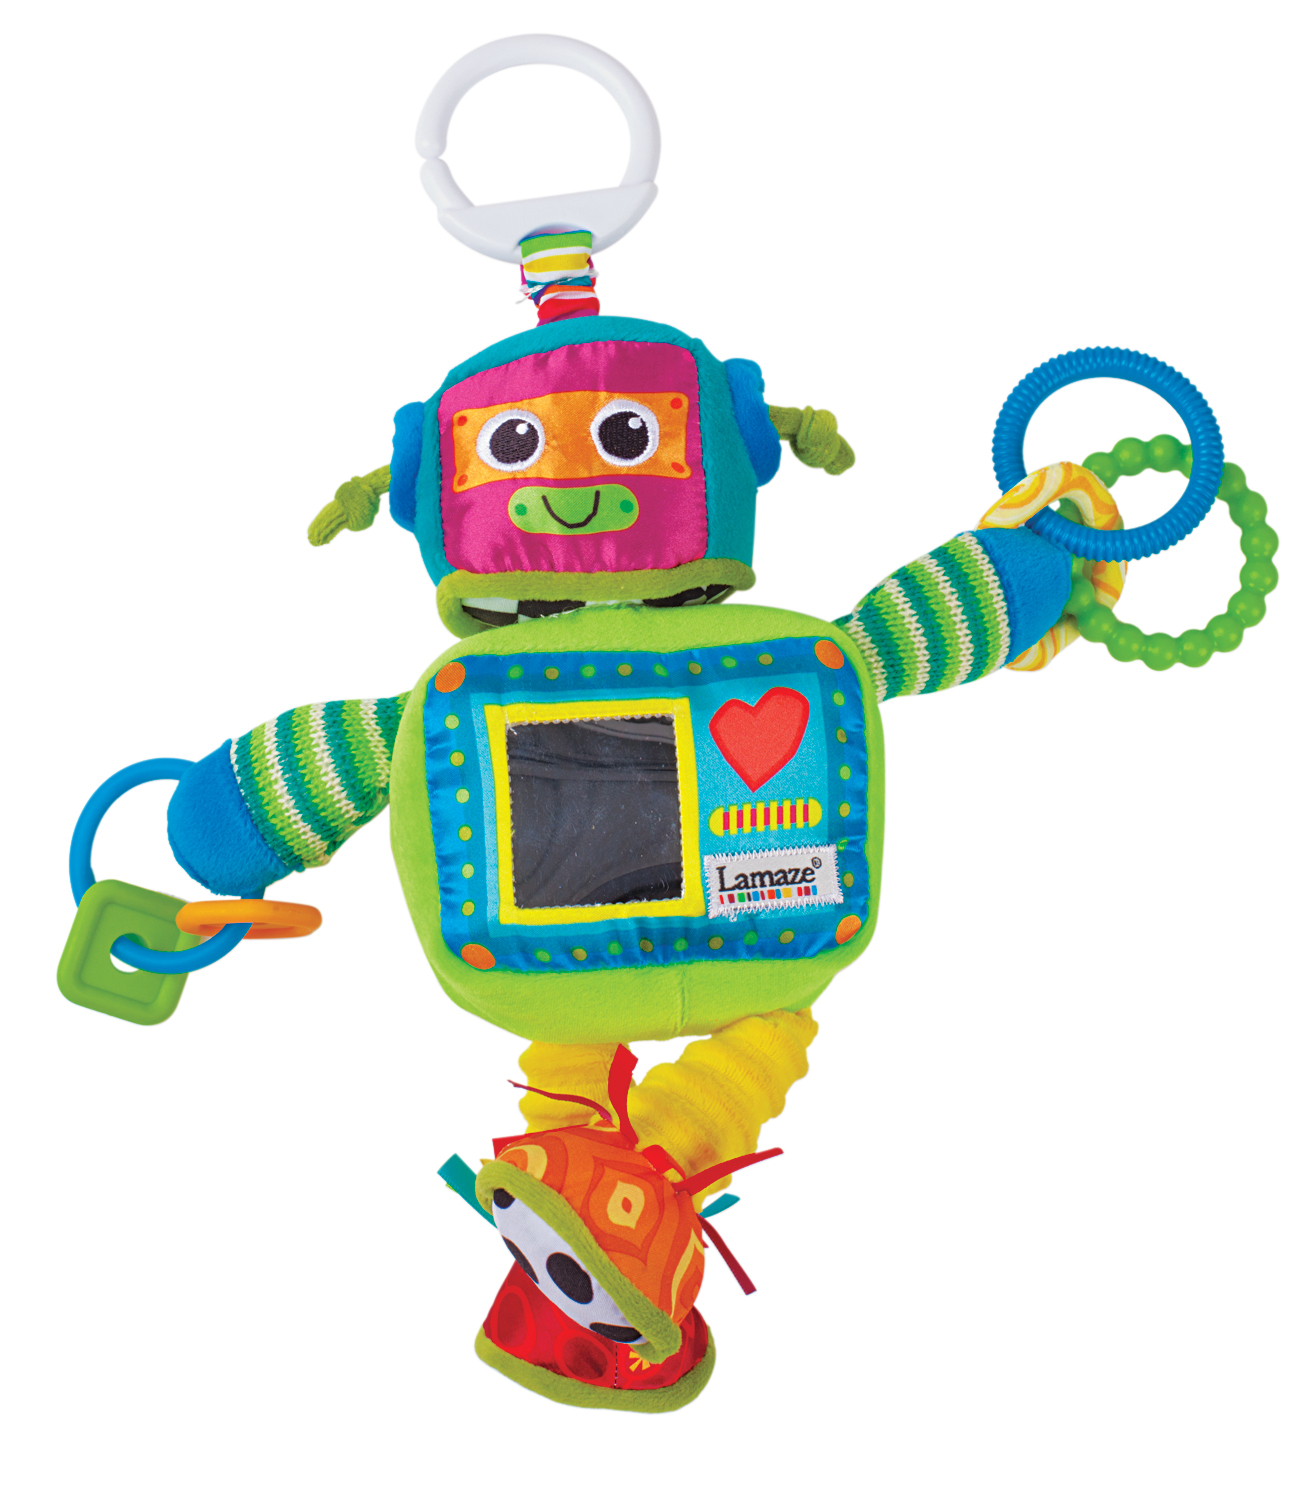 Rusty the Robot by Lamaze